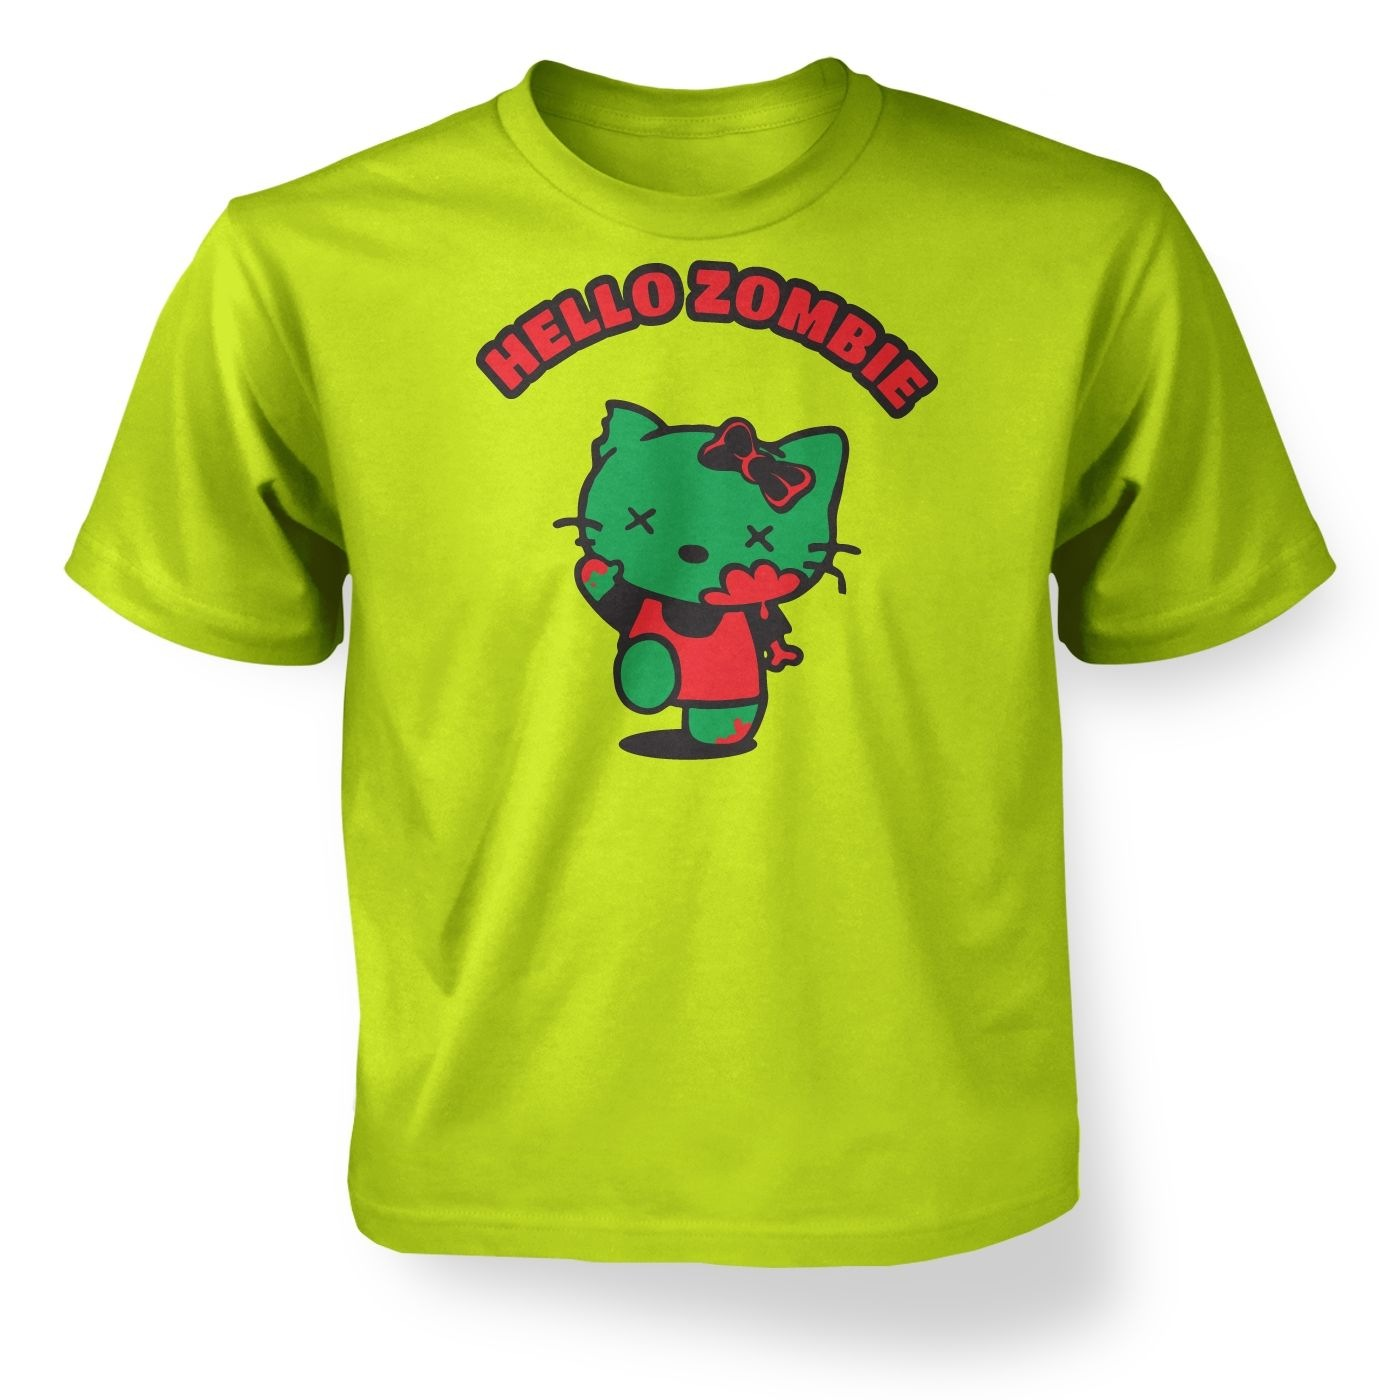 Hello Zombie kids t-shirt